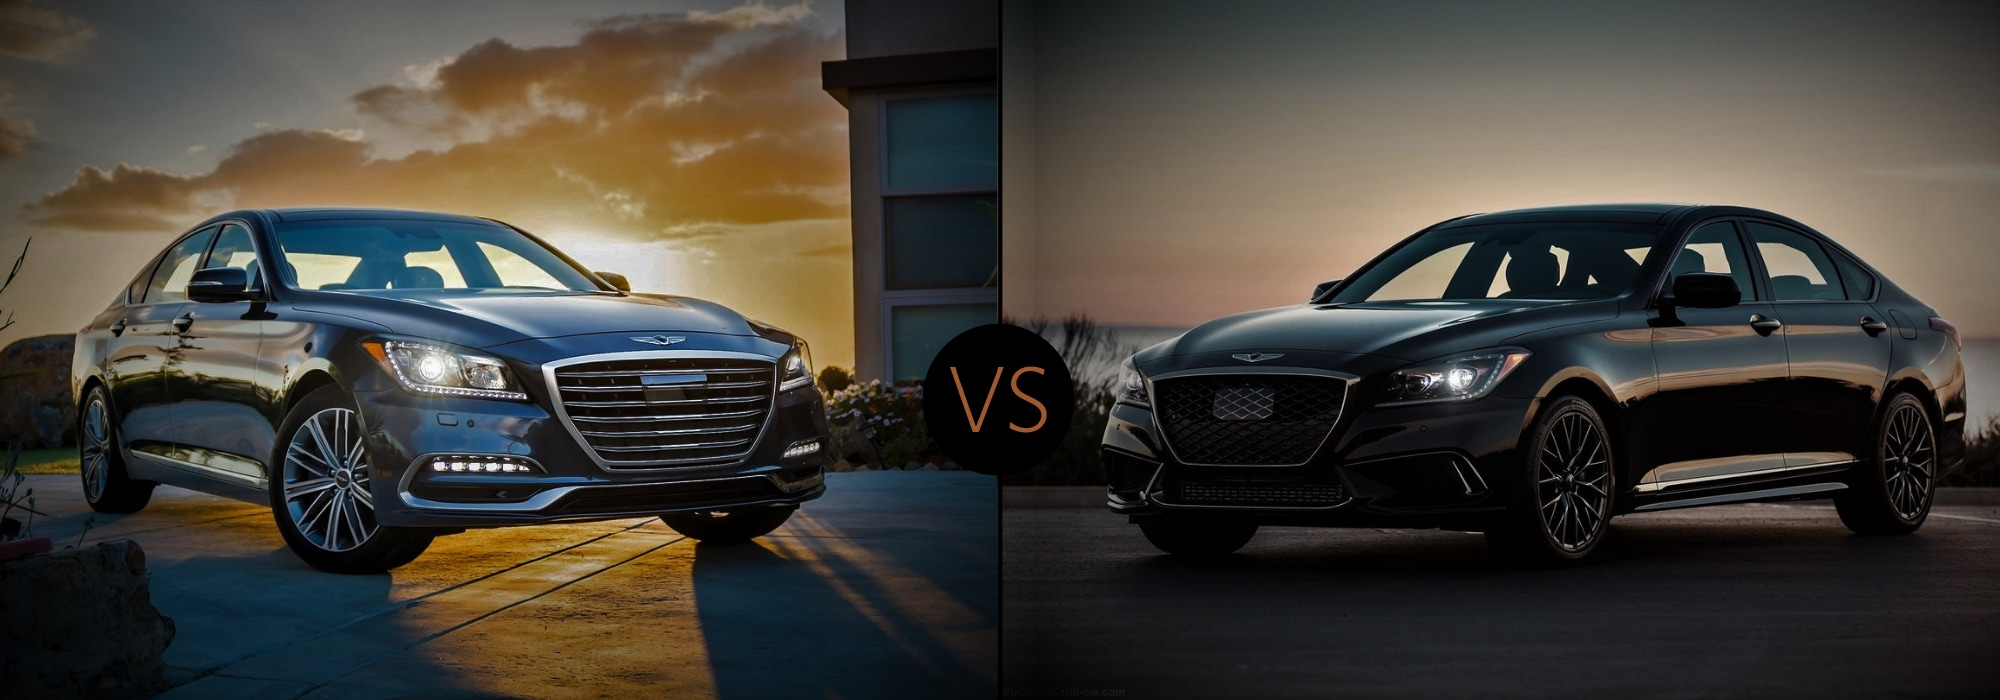 2020 Genesis G80 compared to the 2019 Genesis G80